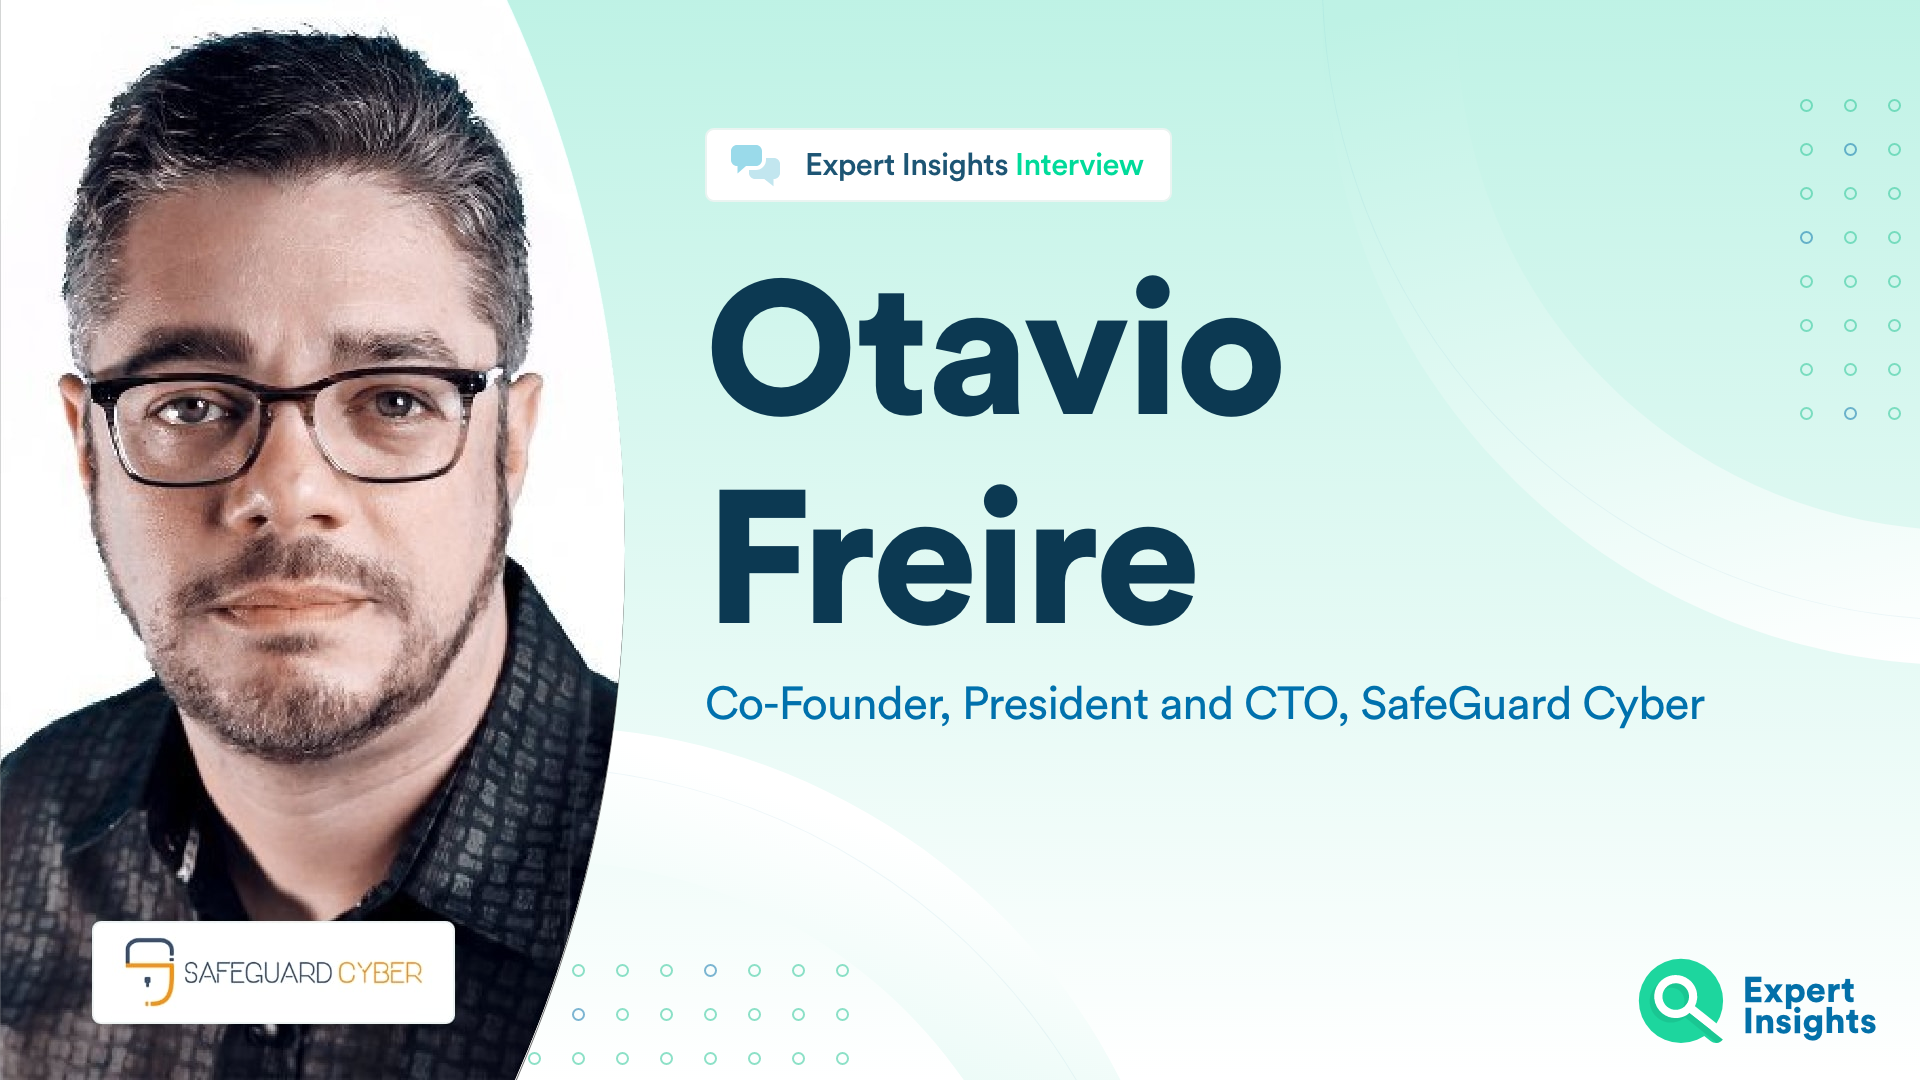 Expert Insights Interview With Otario Freire Of SafeGuard Cyber